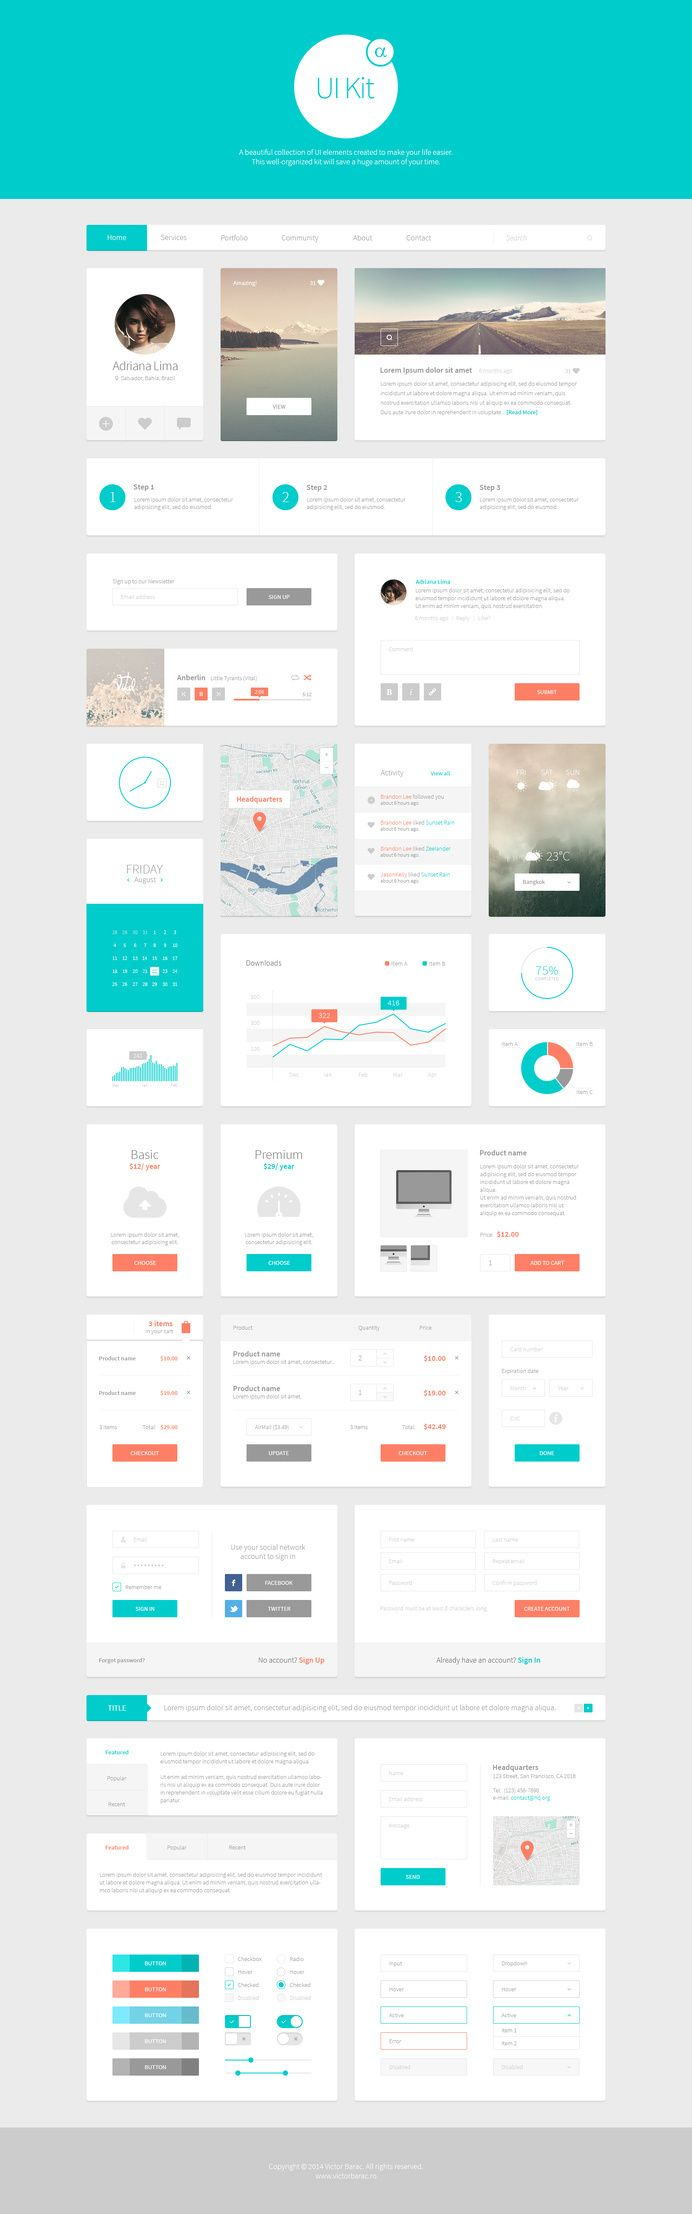 alpha ui kit web elements 1 in dashboard gamified apps